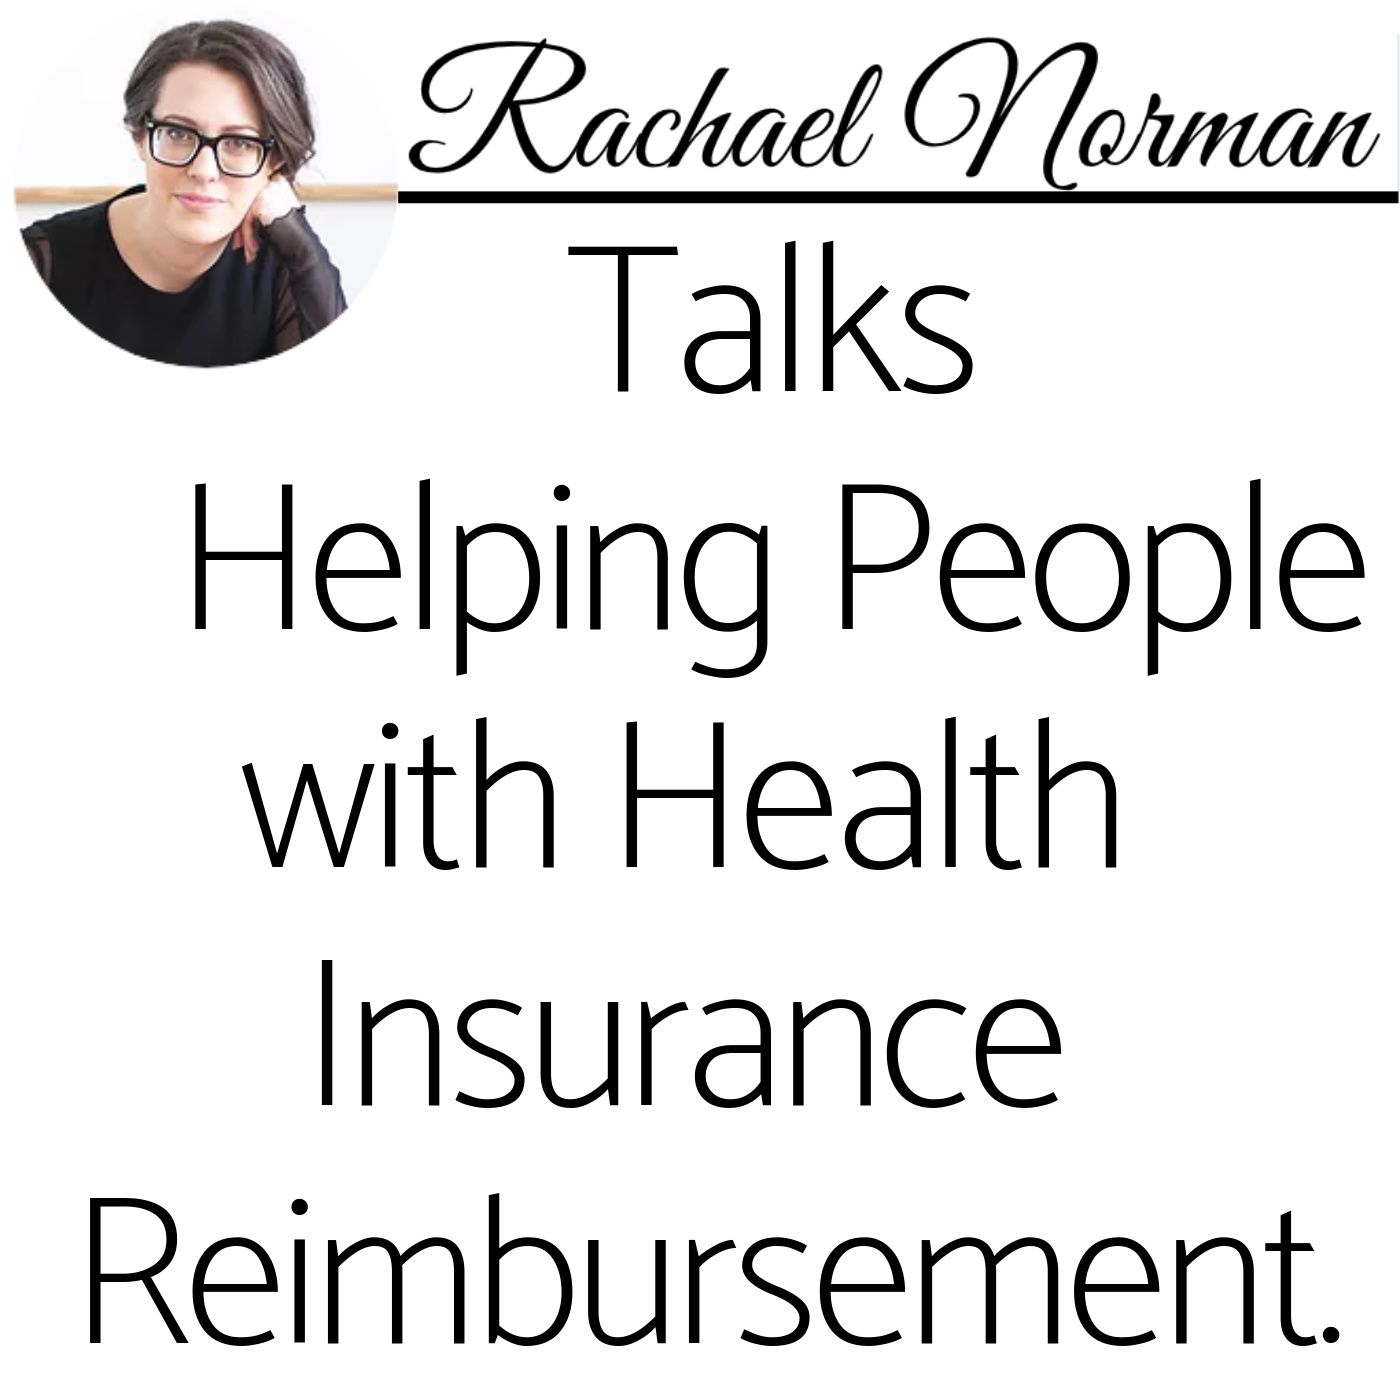 Part 3 of 3 Podcast Episode - Rachael Norman Talks Helping People with Health Insurance Reimbursement.